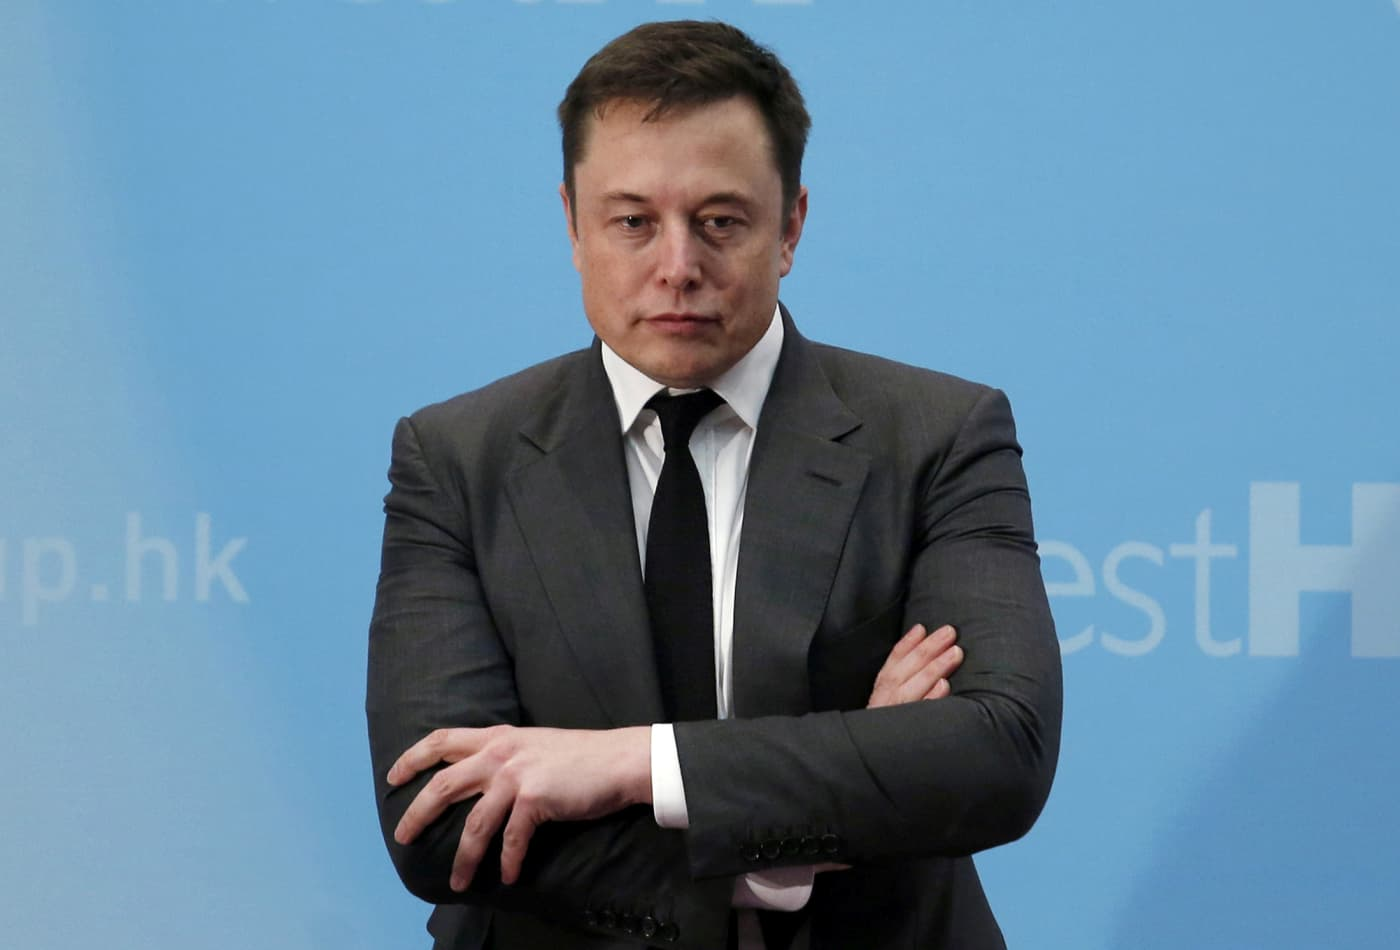 Jim Cramer: Expect Tesla's stock to fall hard on an earnings miss